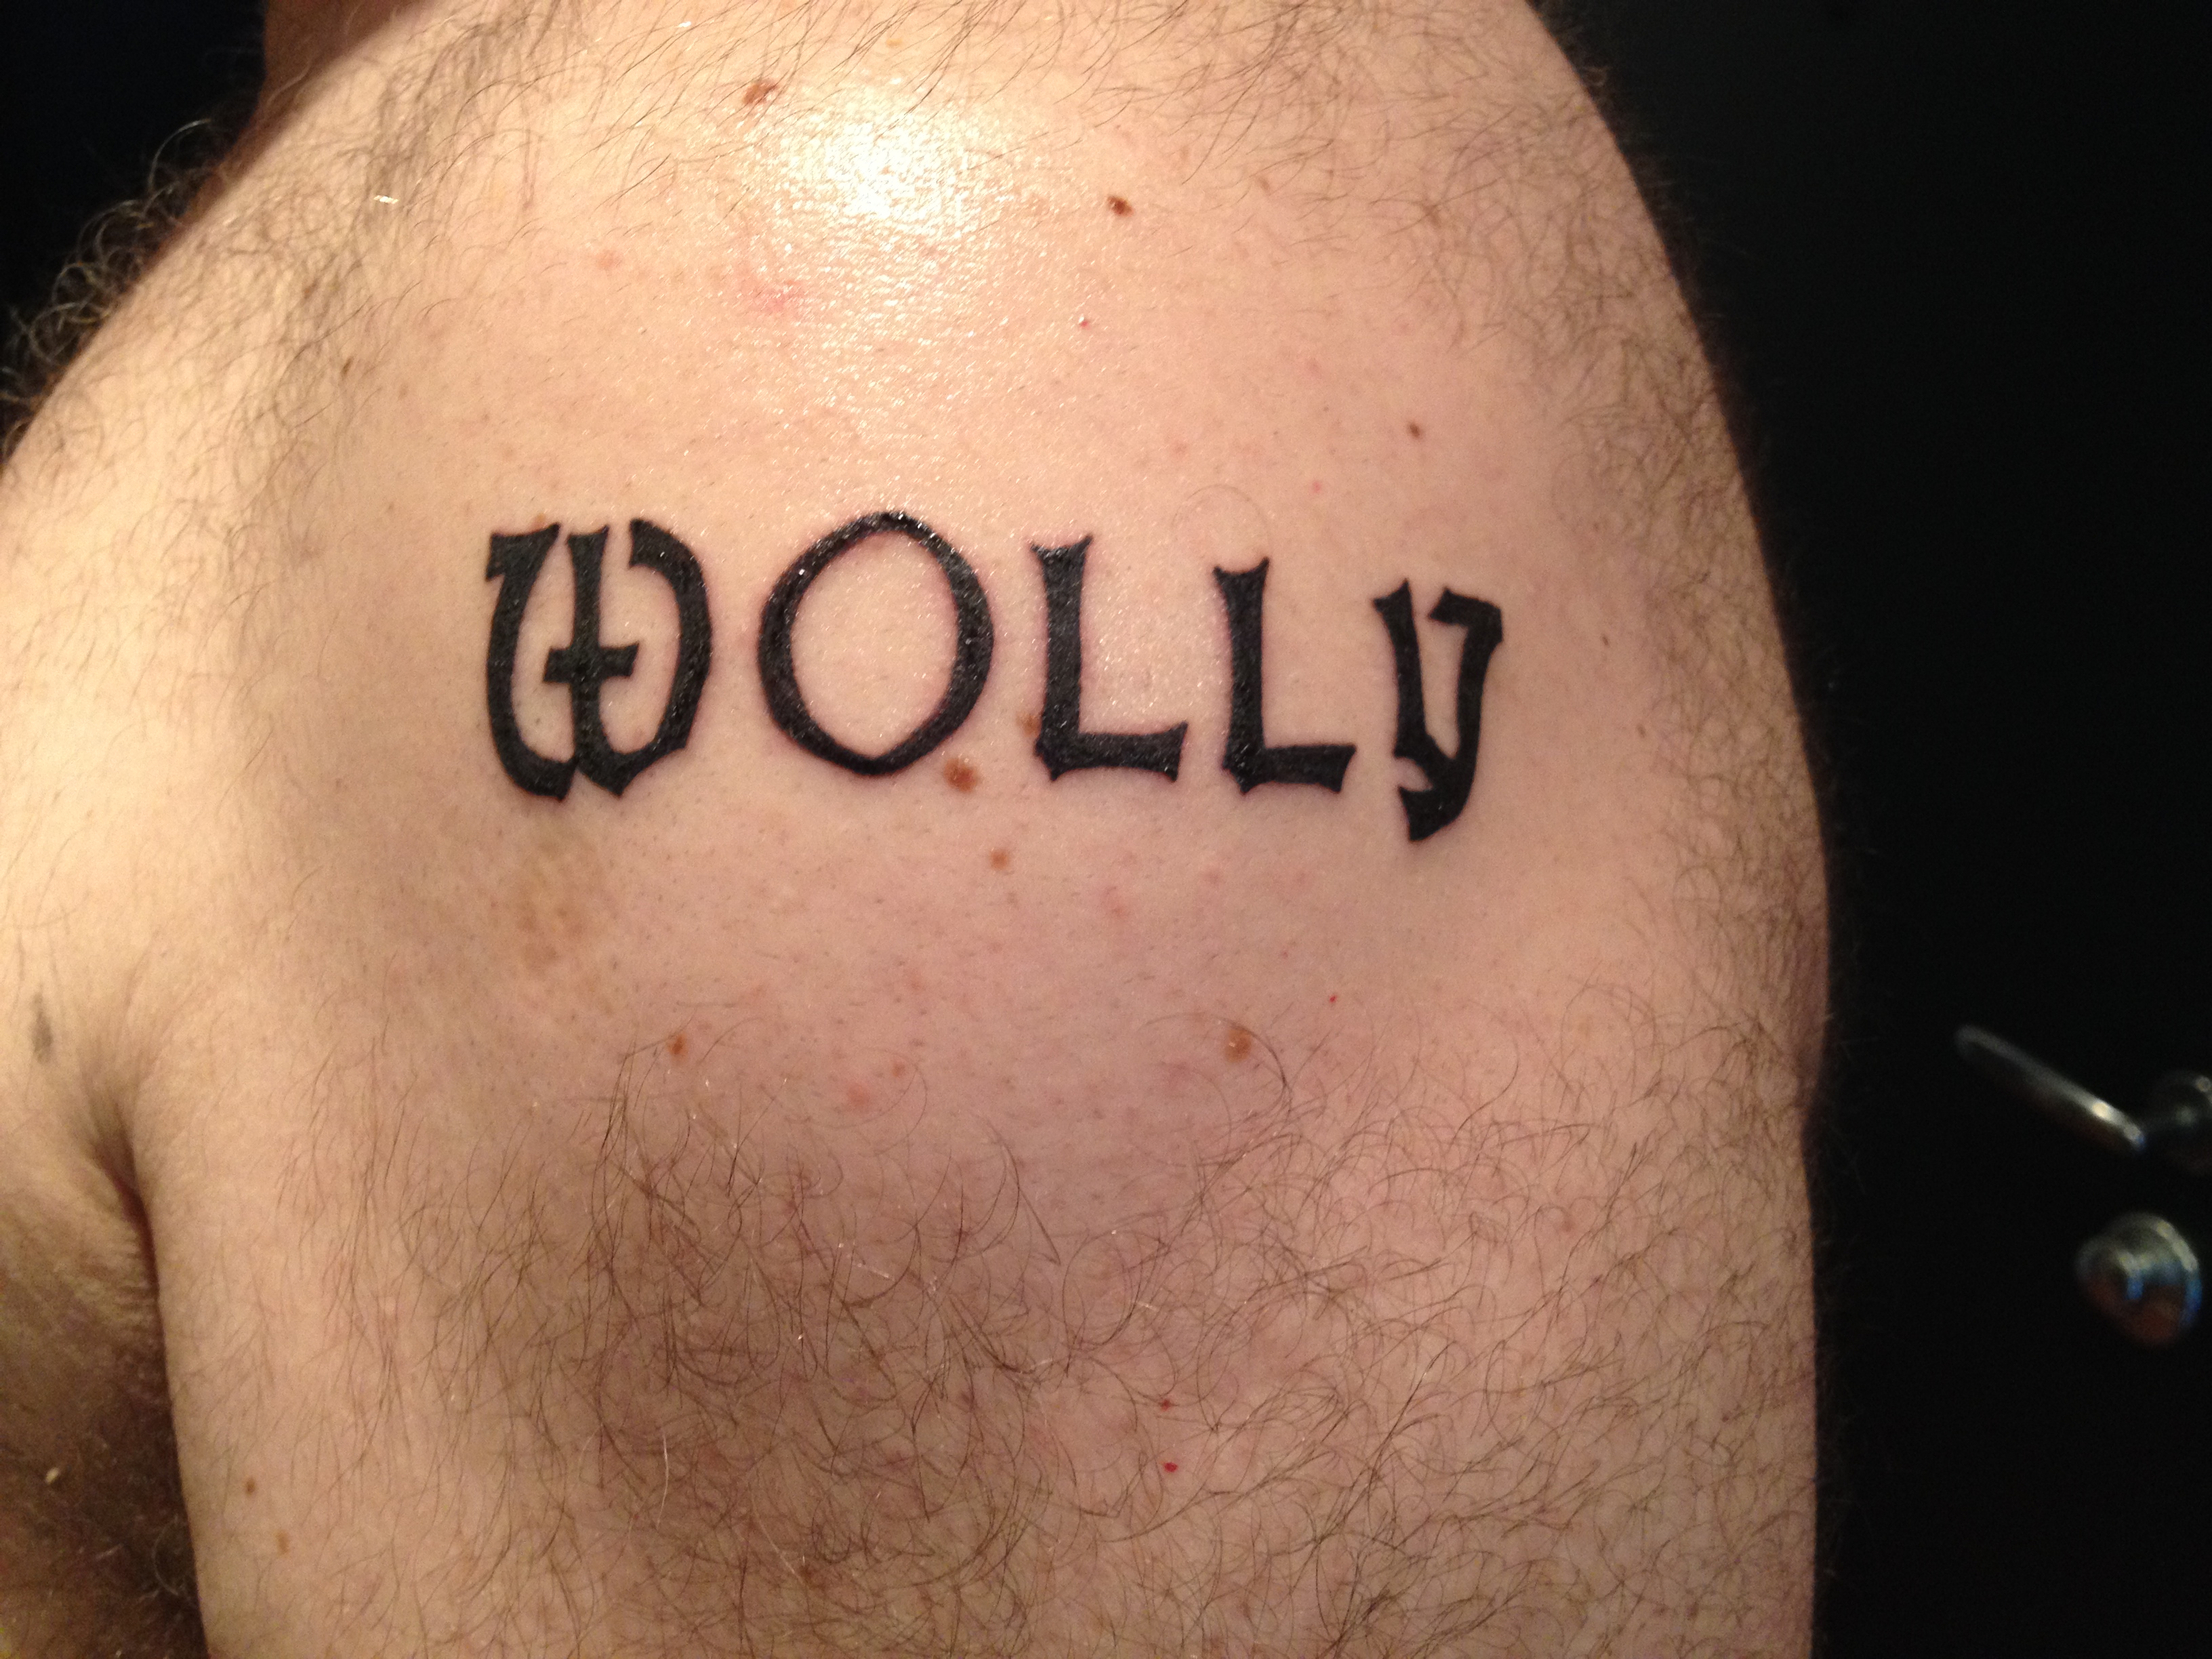 wolly tattoo